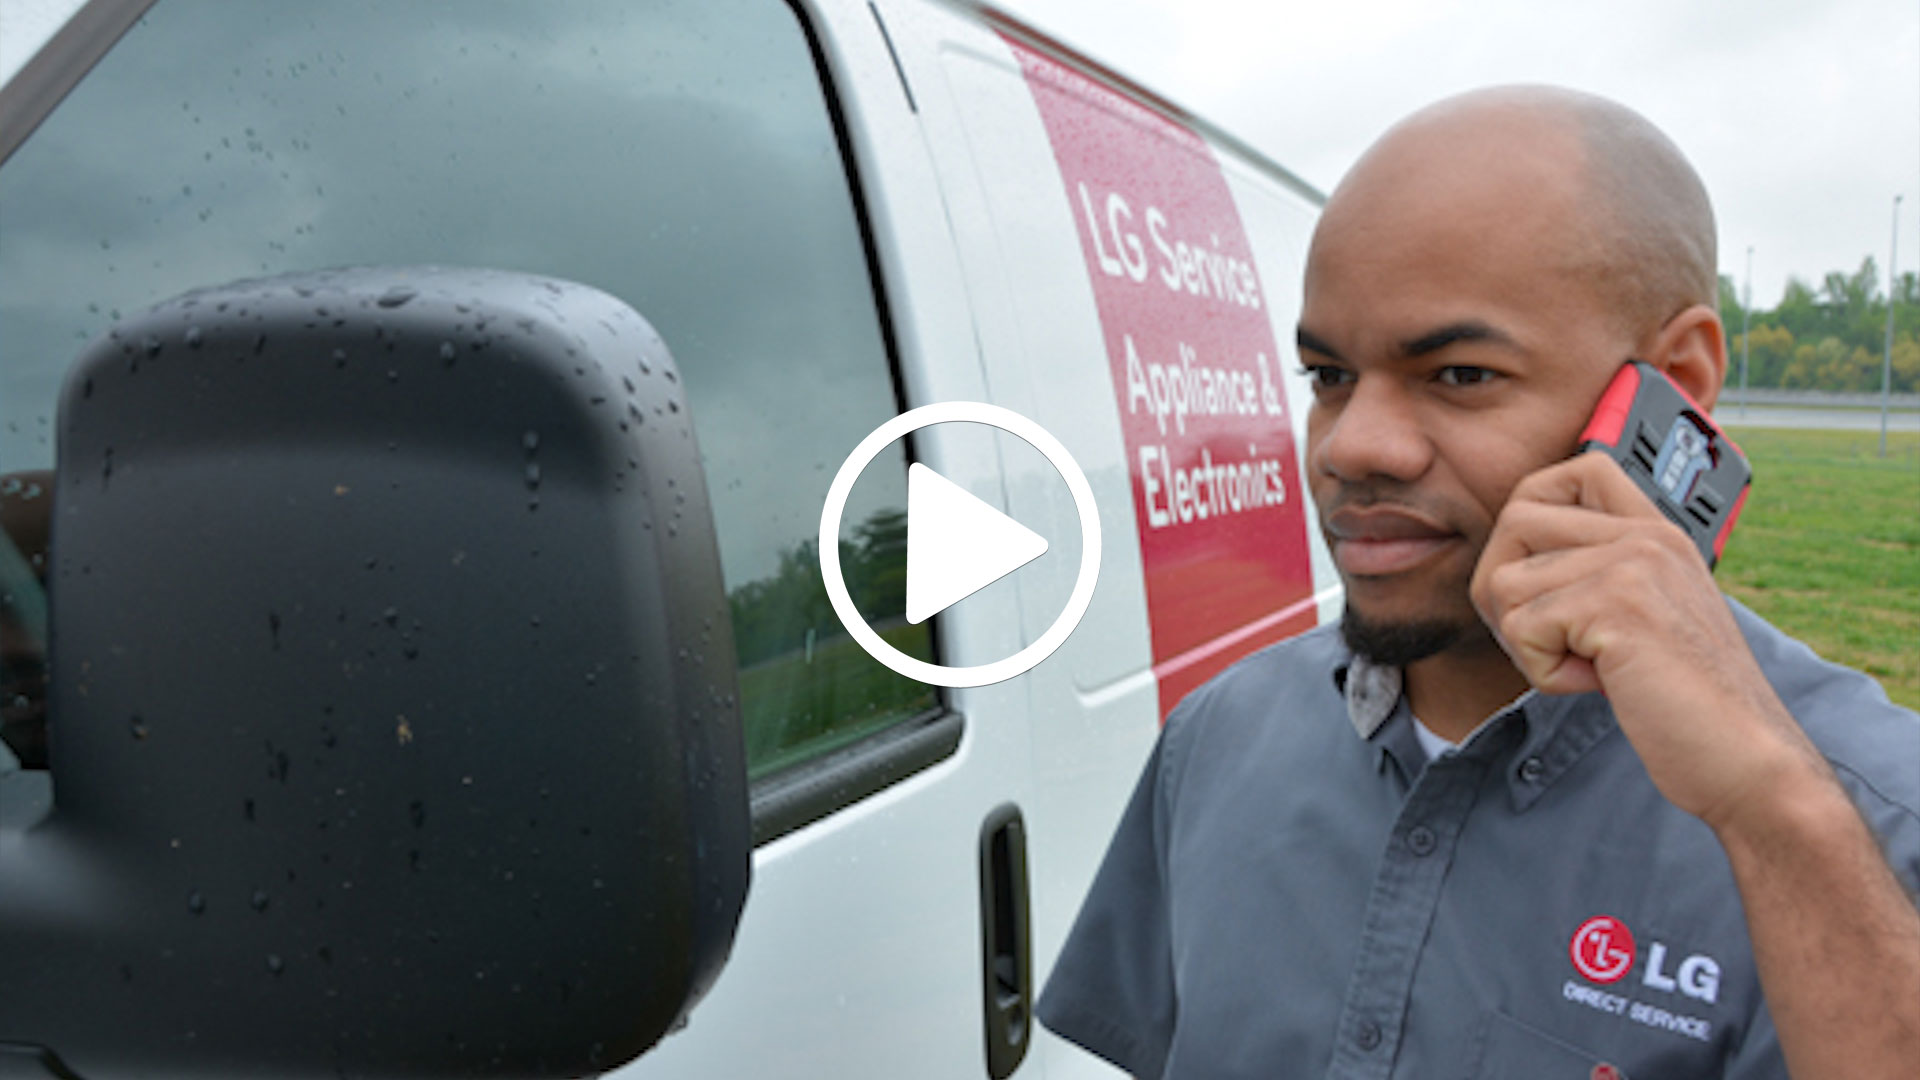 Watch our careers video for available job opening Field Service Technician in Tampa, FL